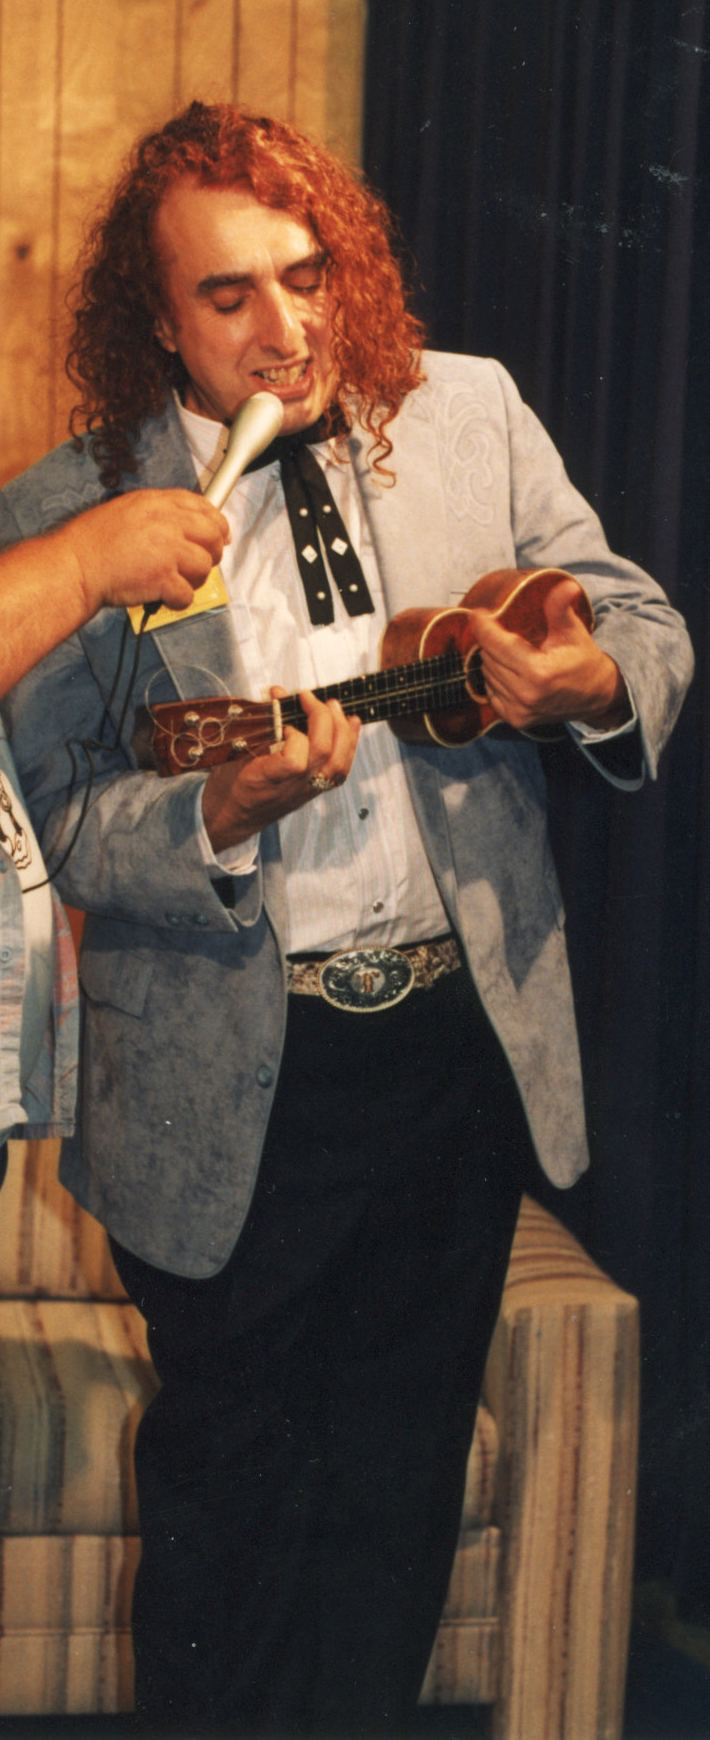 Tiny Tim with curly blonde hair, wearing a suit, a white shirt, black pants, and playing a ukelele with a man holding a microphone for him.